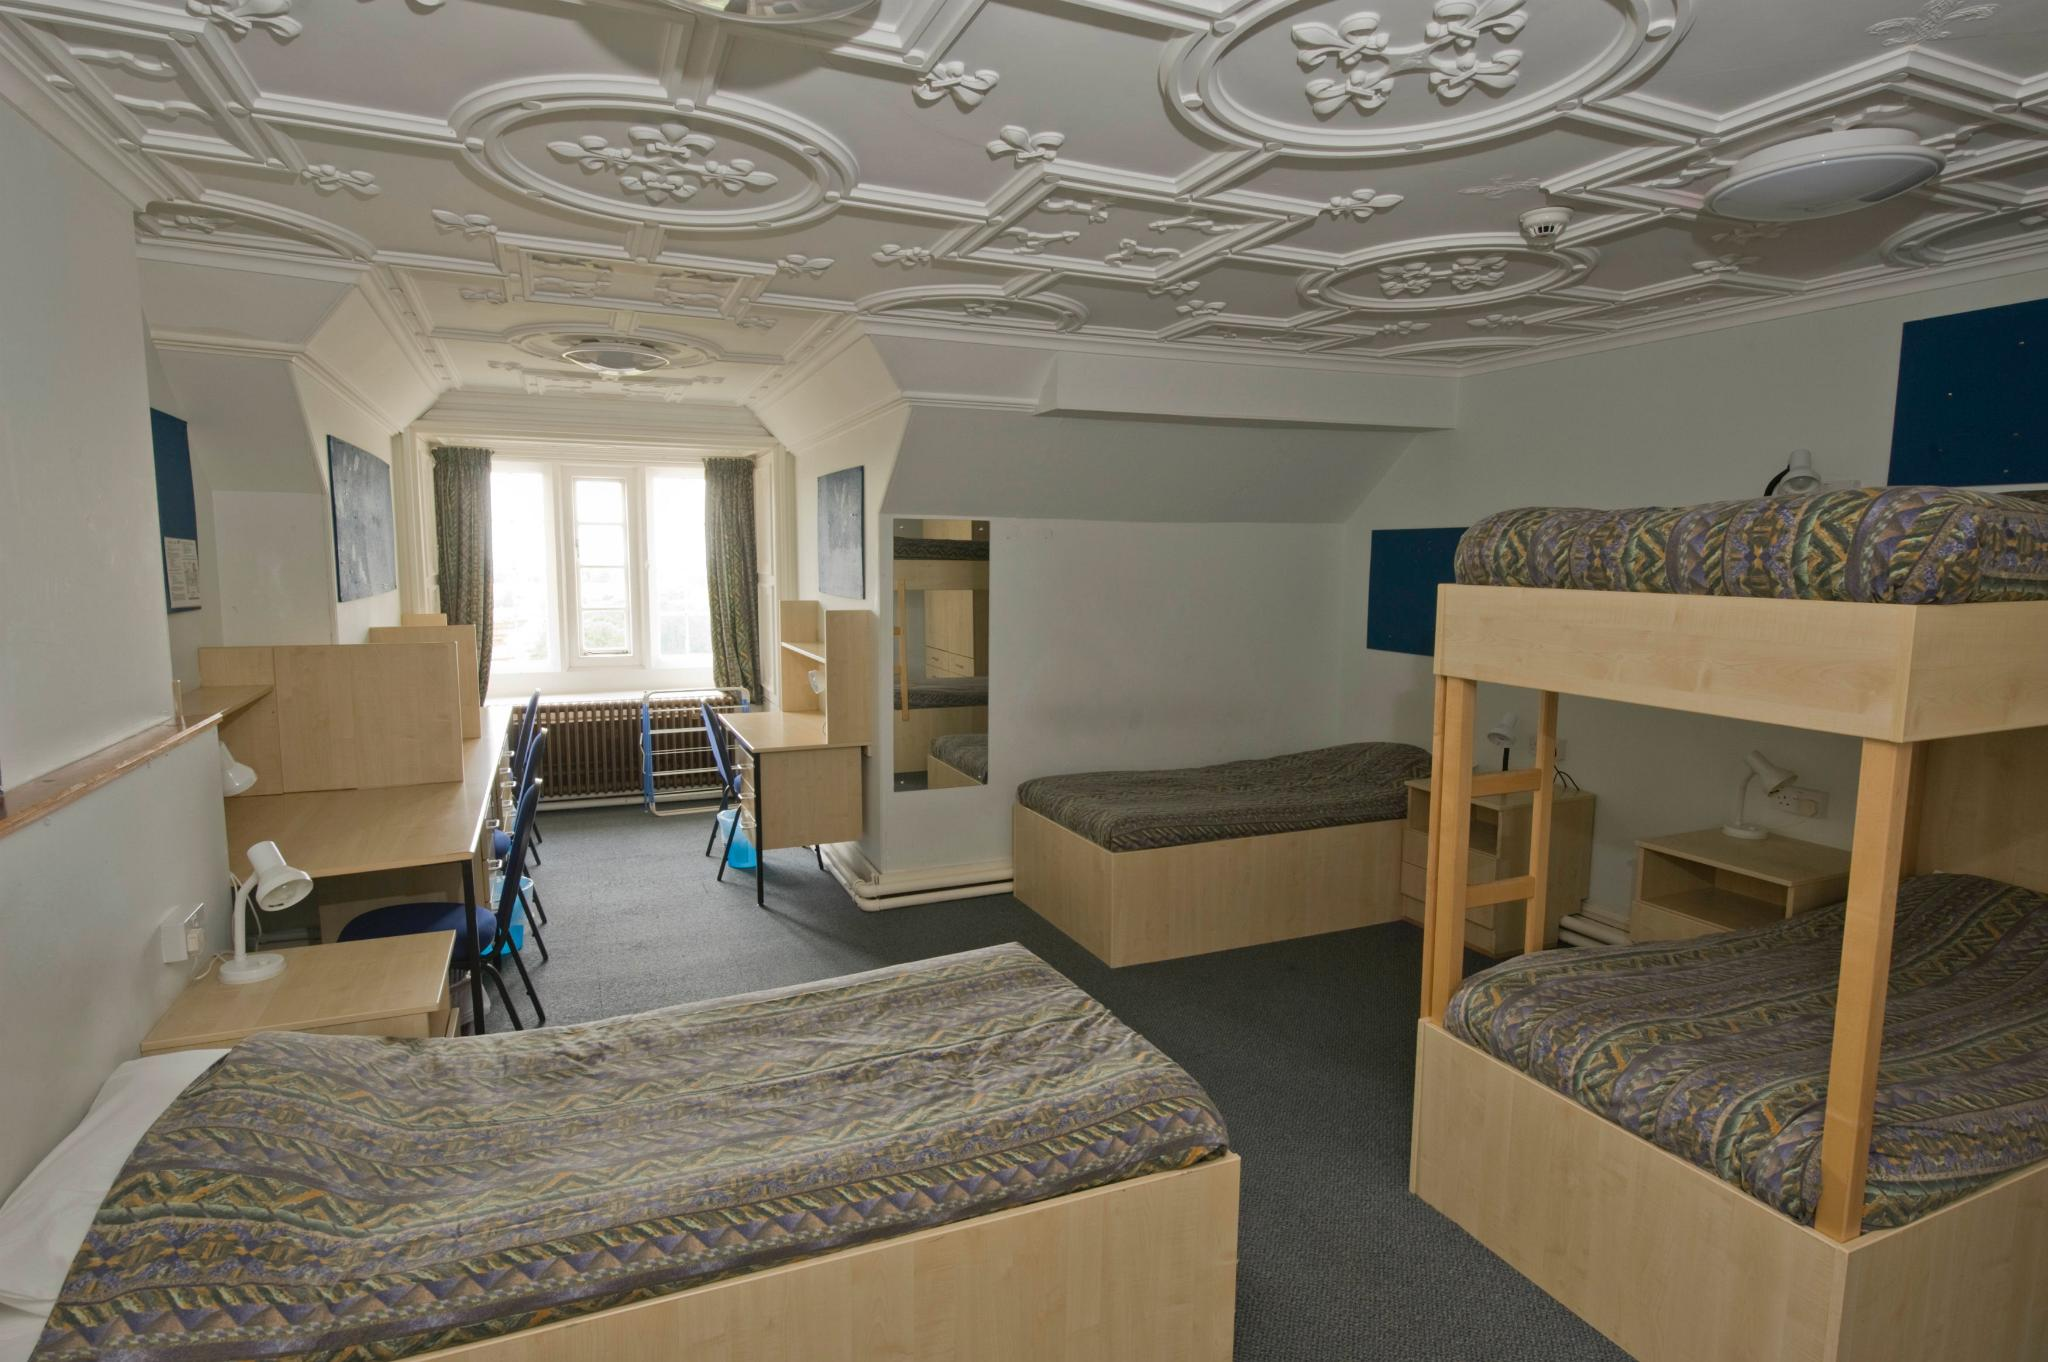 Quad Student Dormitory Room In The Manor